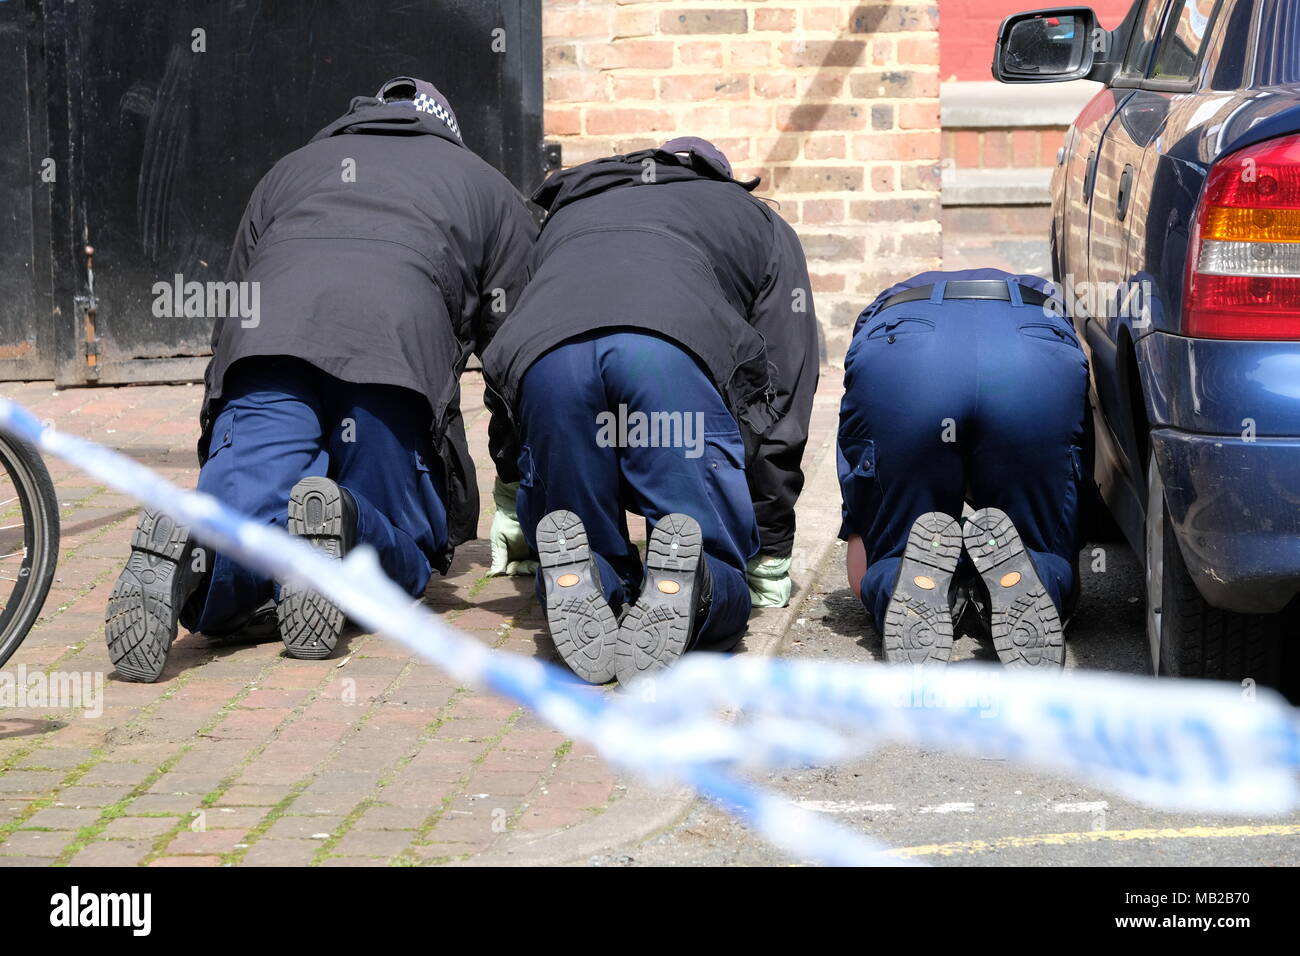 Vauxhall, UK. 6th April 2018. Police carry out investigation at site of non fatal shooting in Vauxhall. The incident happened in the early hours of 6th april Credit: Rachel Megawhat/Alamy Live News - Stock Image